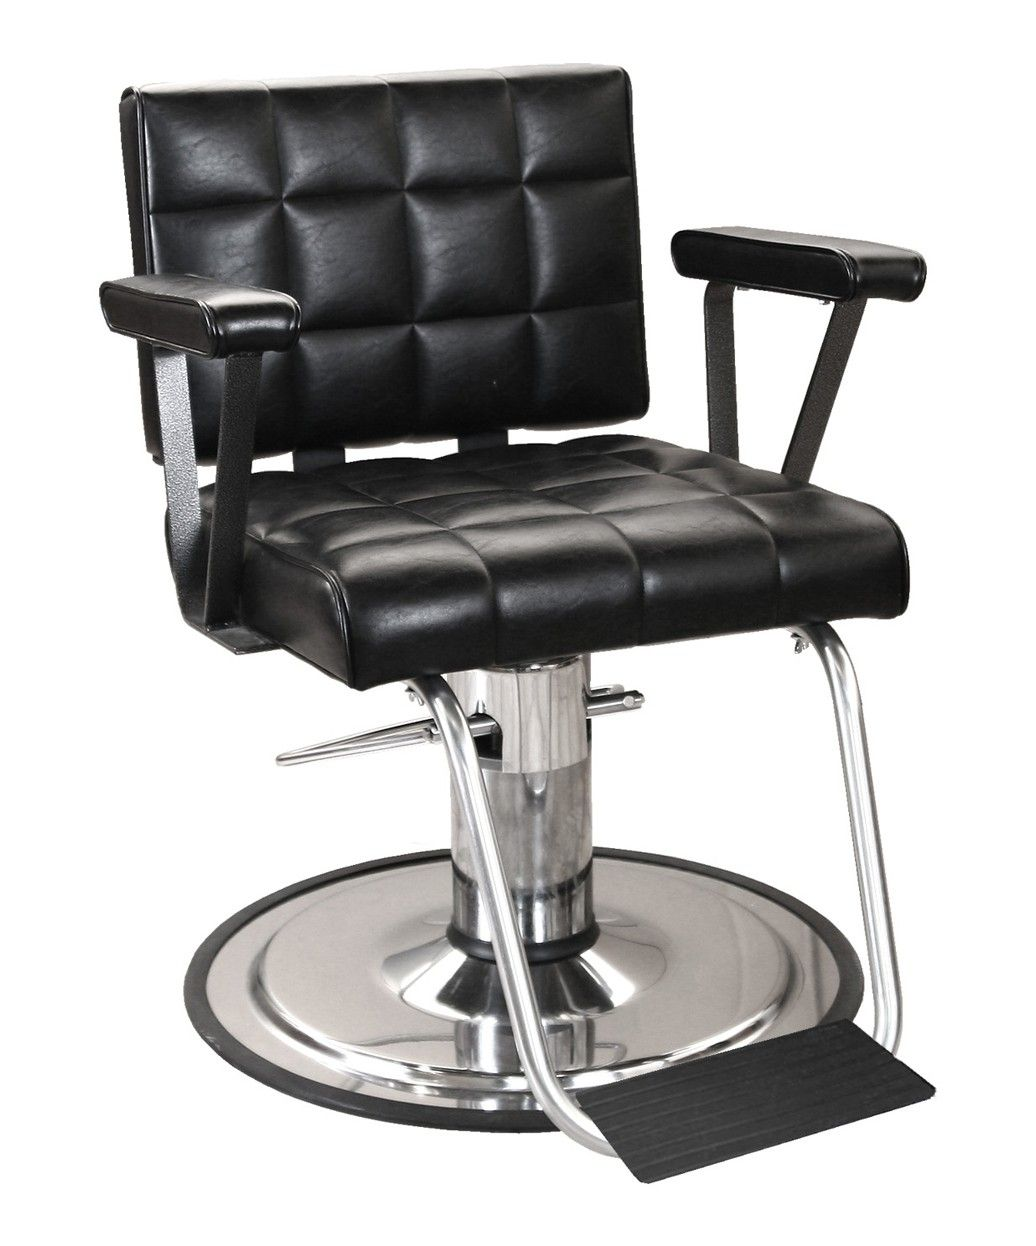 Collins 7900 Hackney Styling Chair